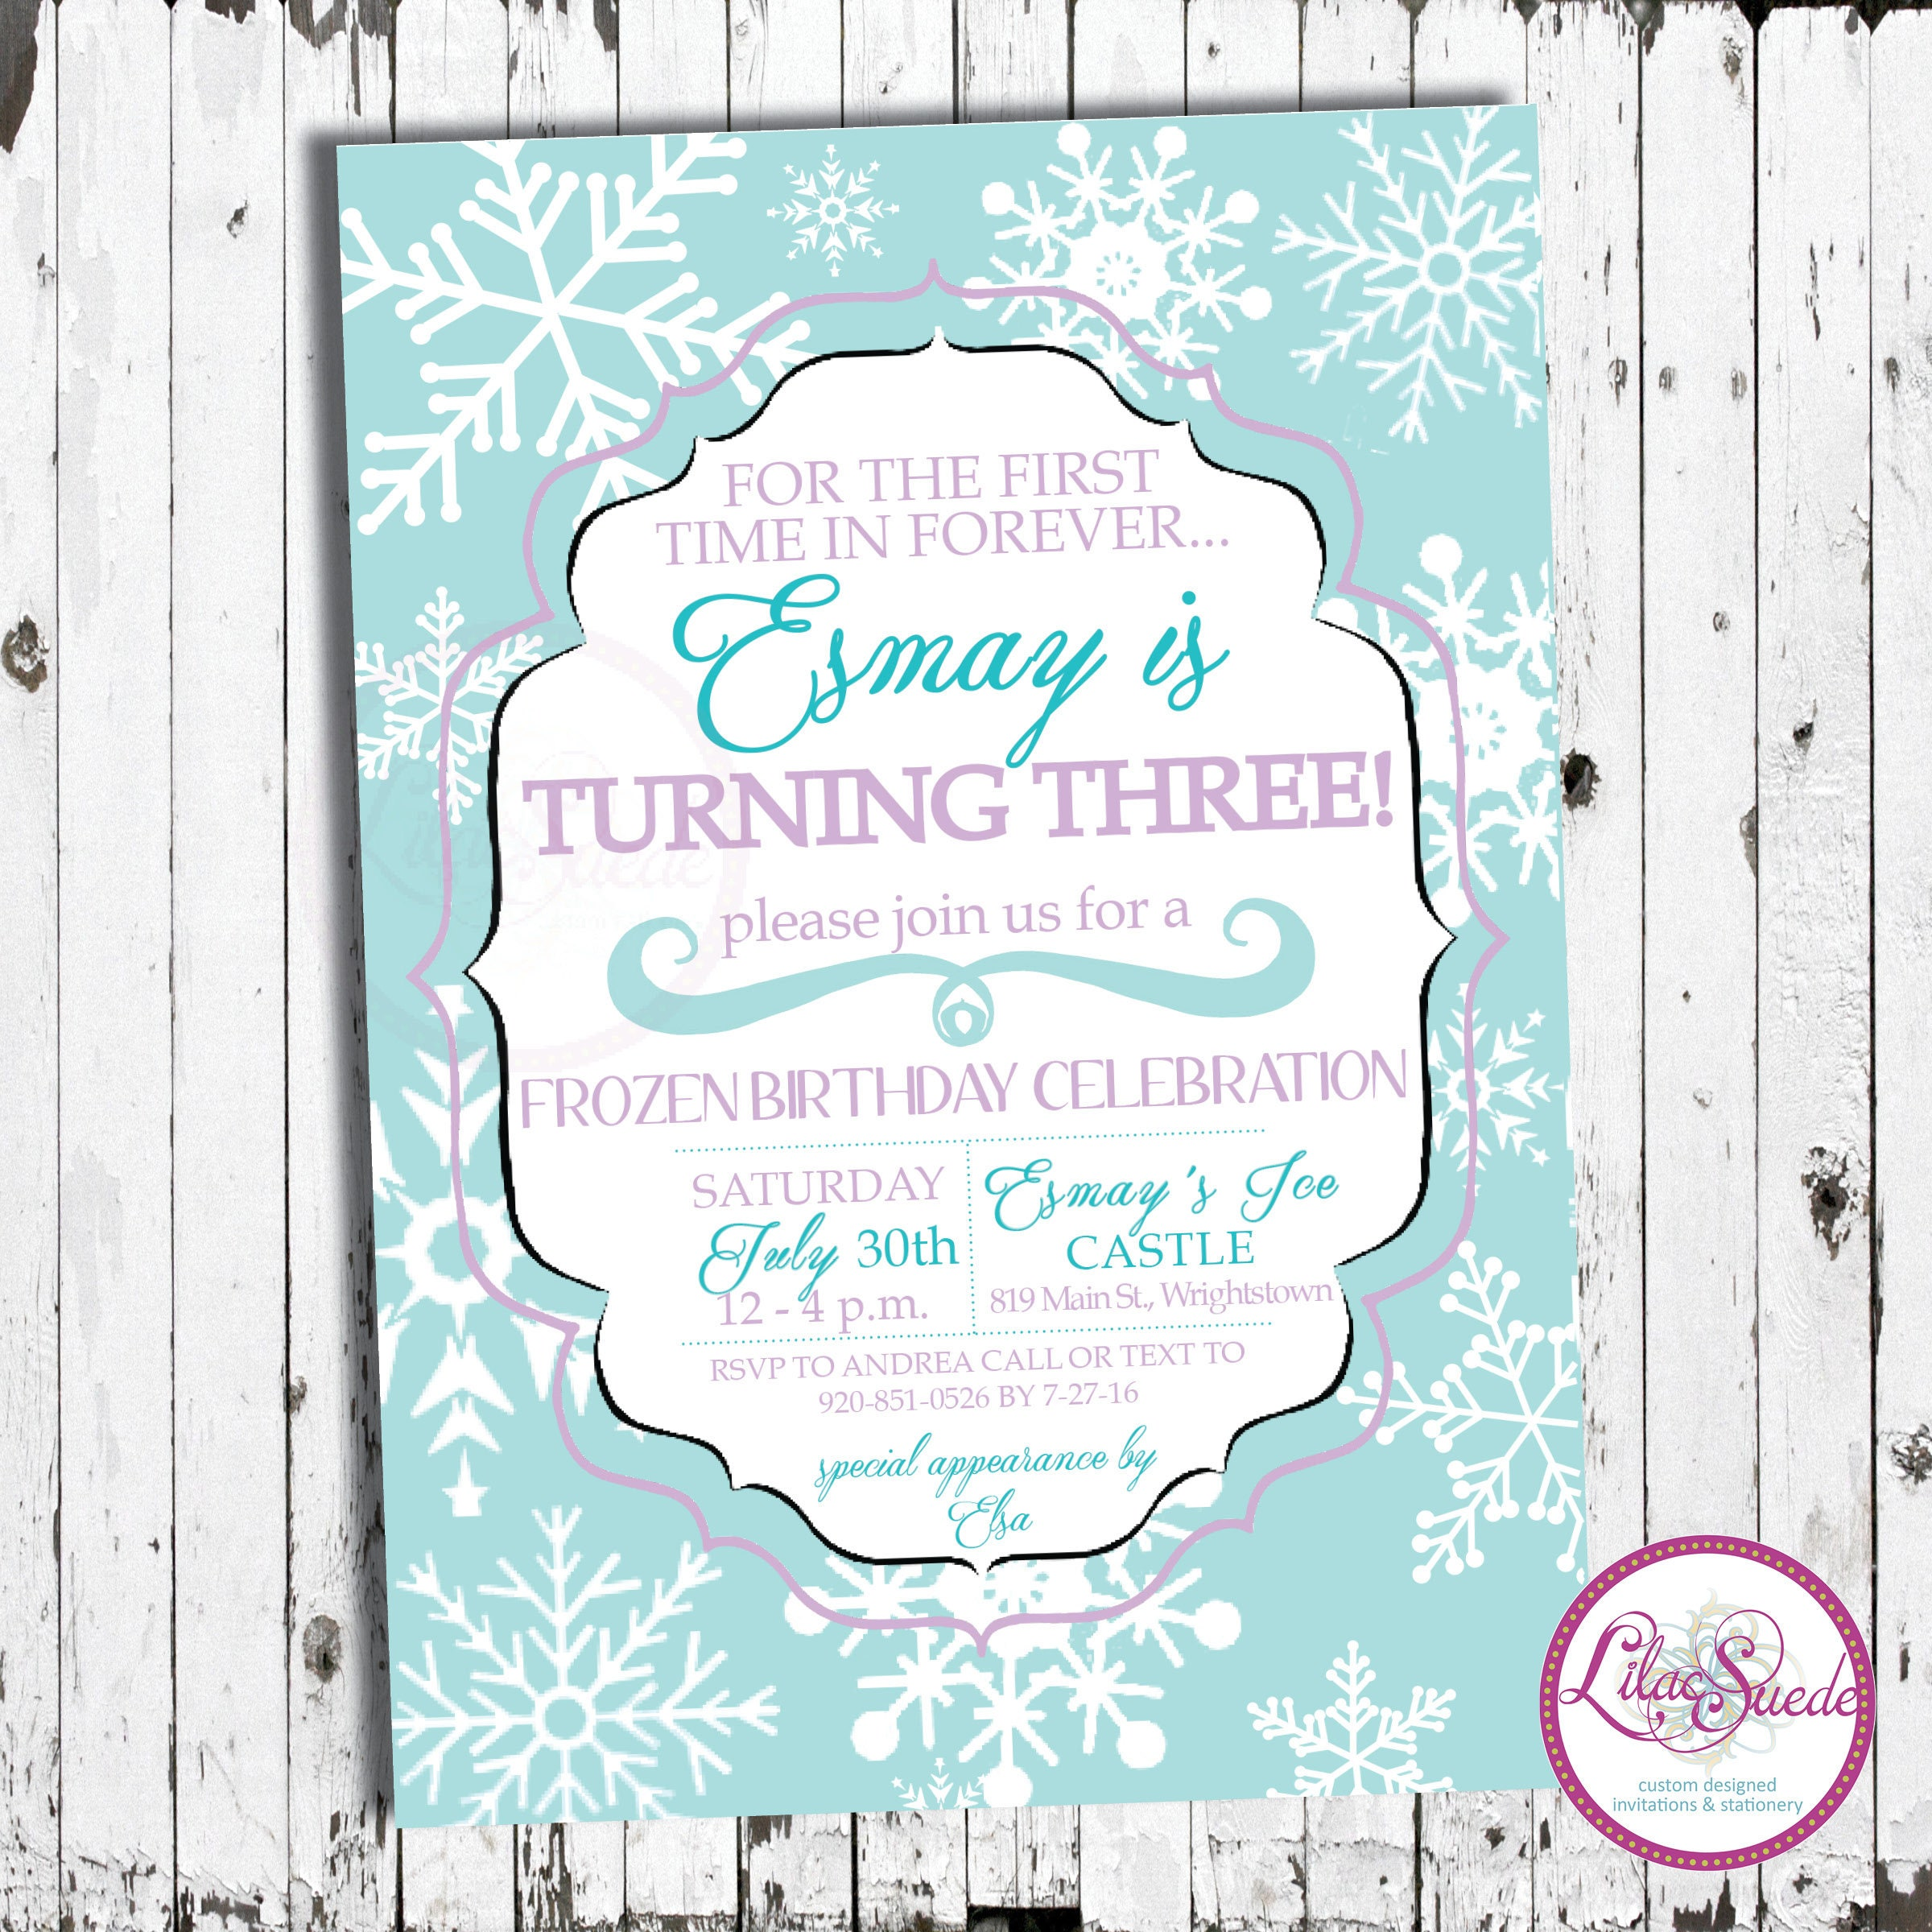 Frozen inspired birthday invitation blue purple snowflakes zoom solutioingenieria Images